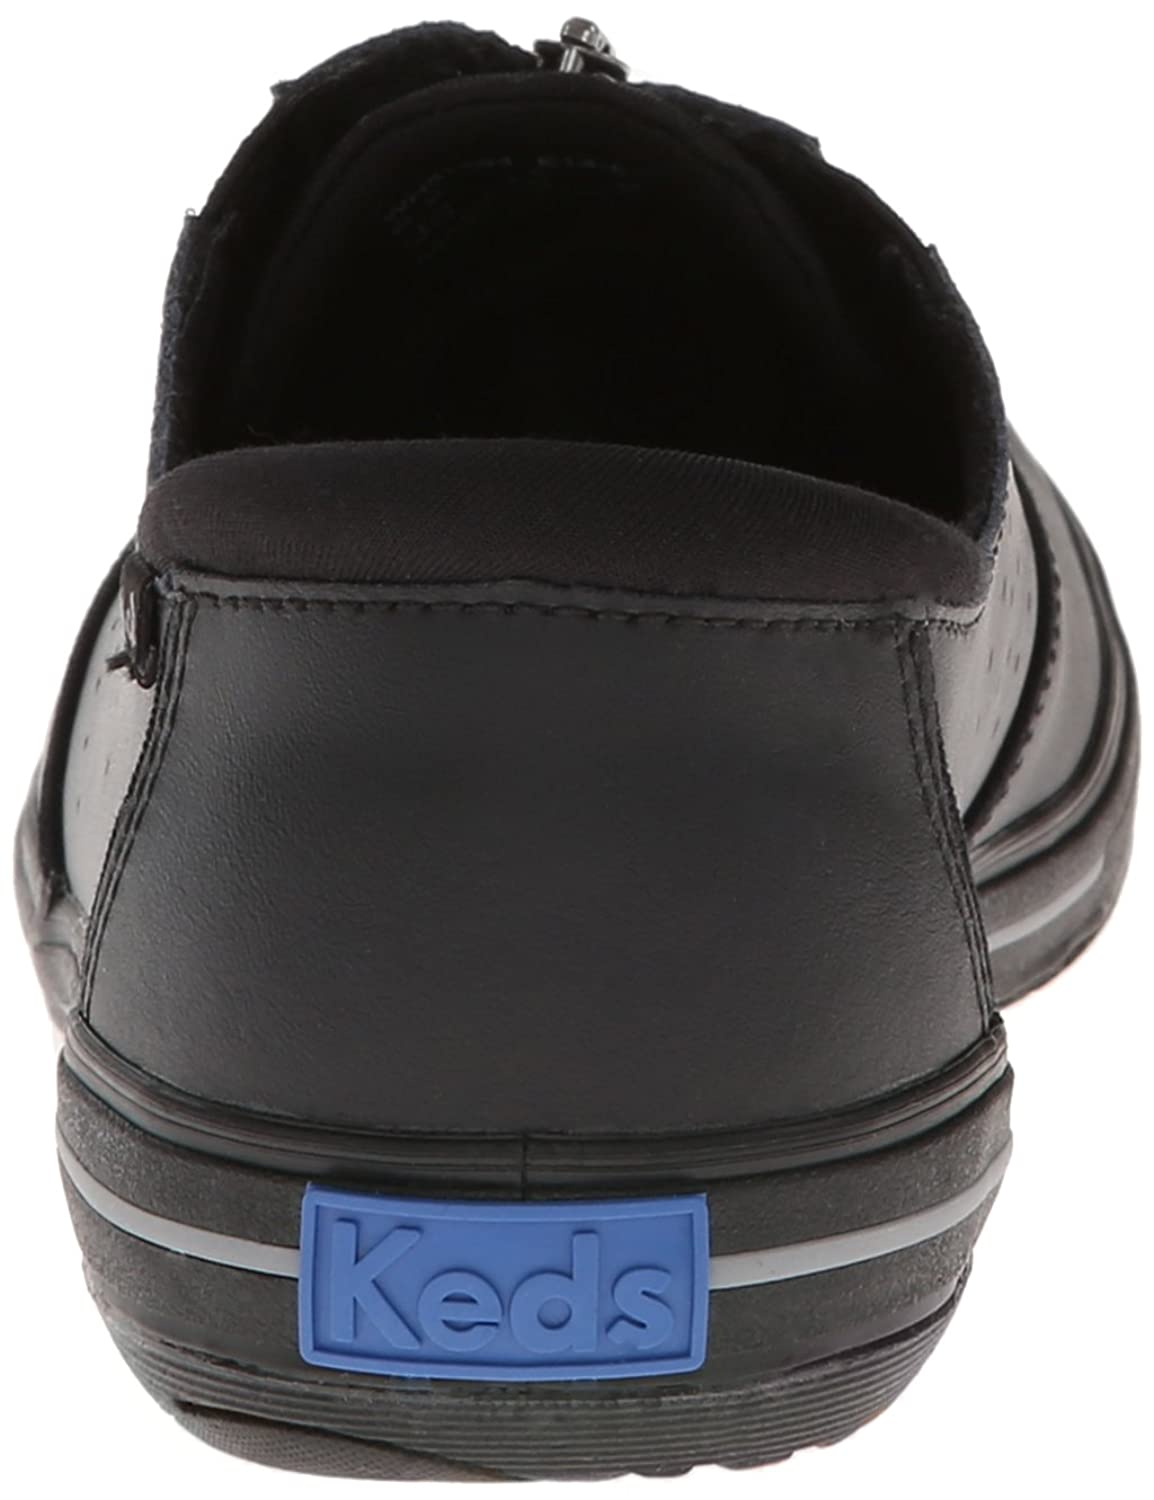 keds leather shoes with zipper